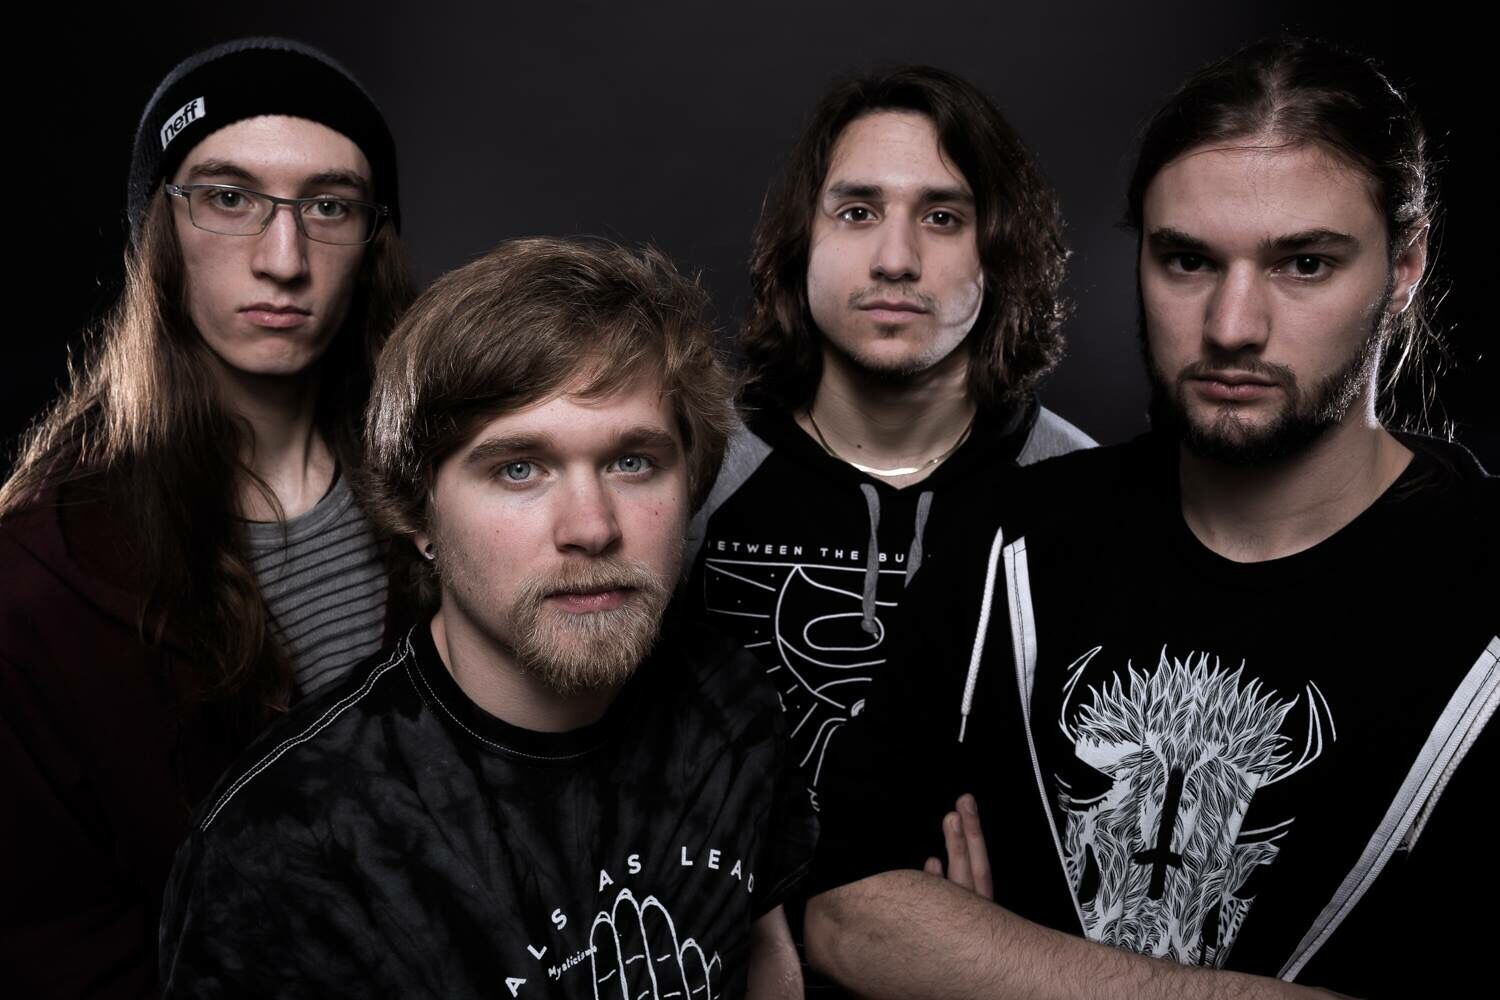 Myth of I Illustrate Their Technical Prowess with a Brand New Album Track